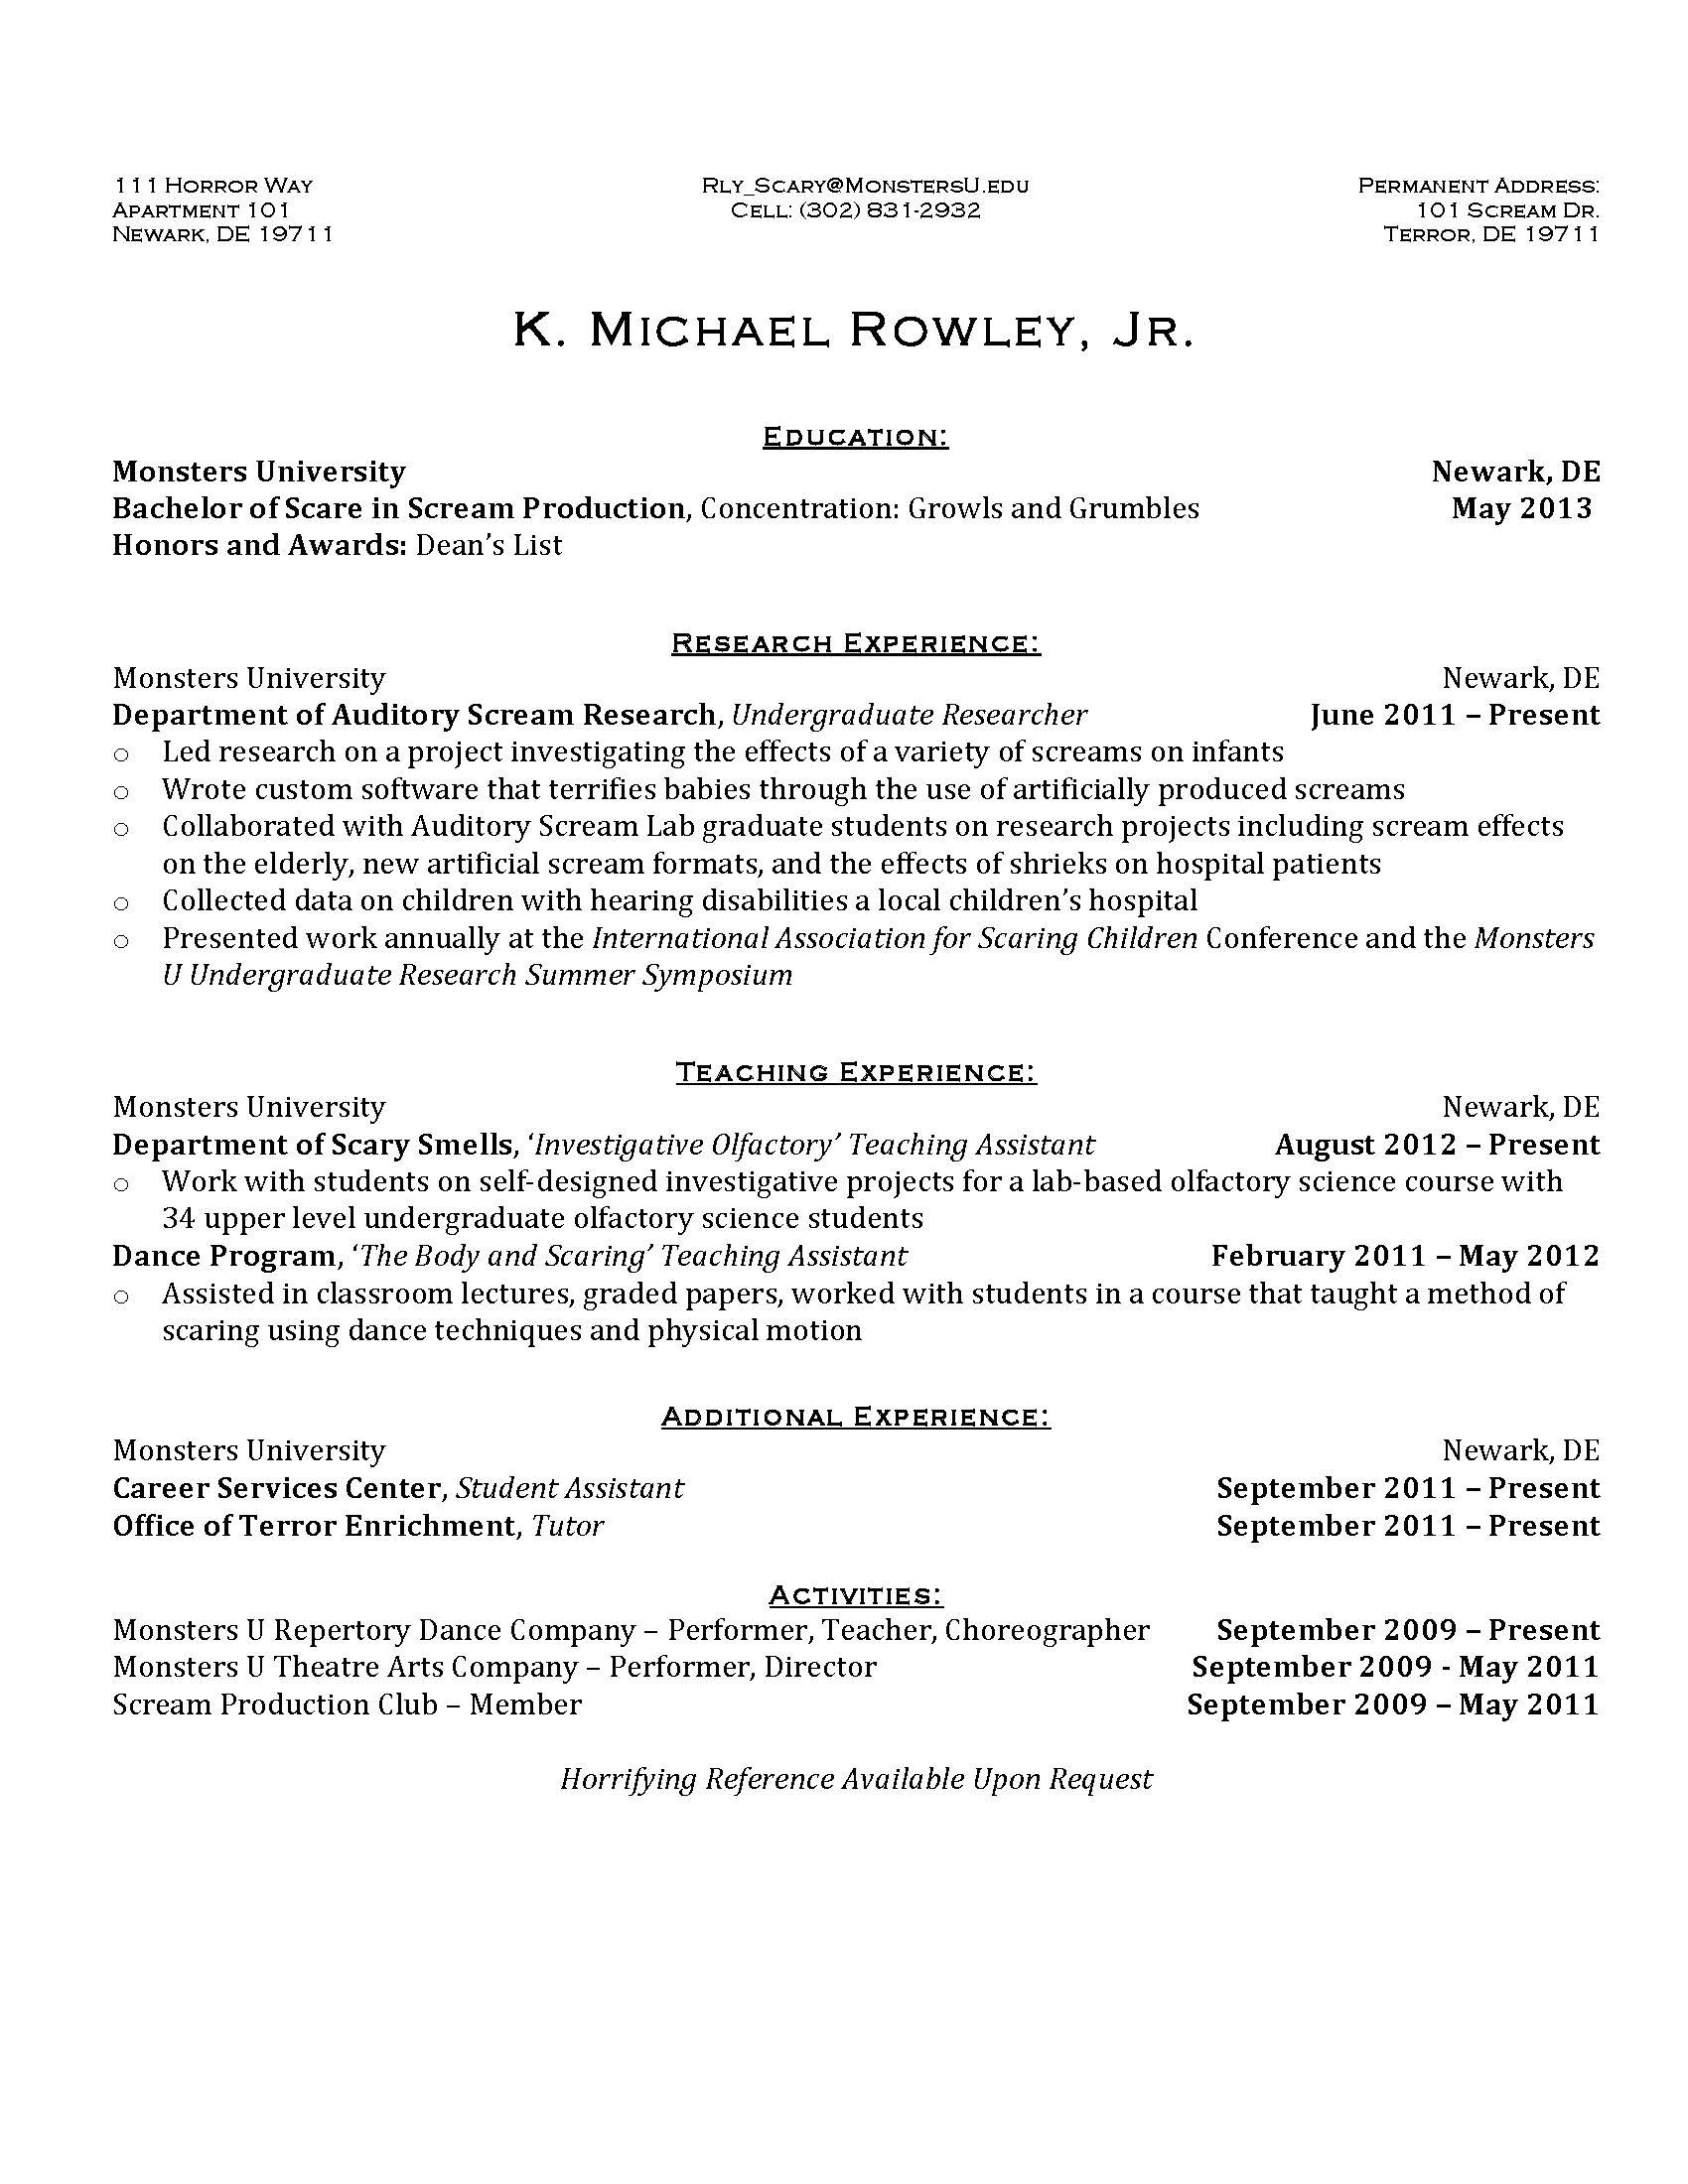 monster cv writing services professional resume monsters receptionist job objective for Resume Monster Resume Writing Services